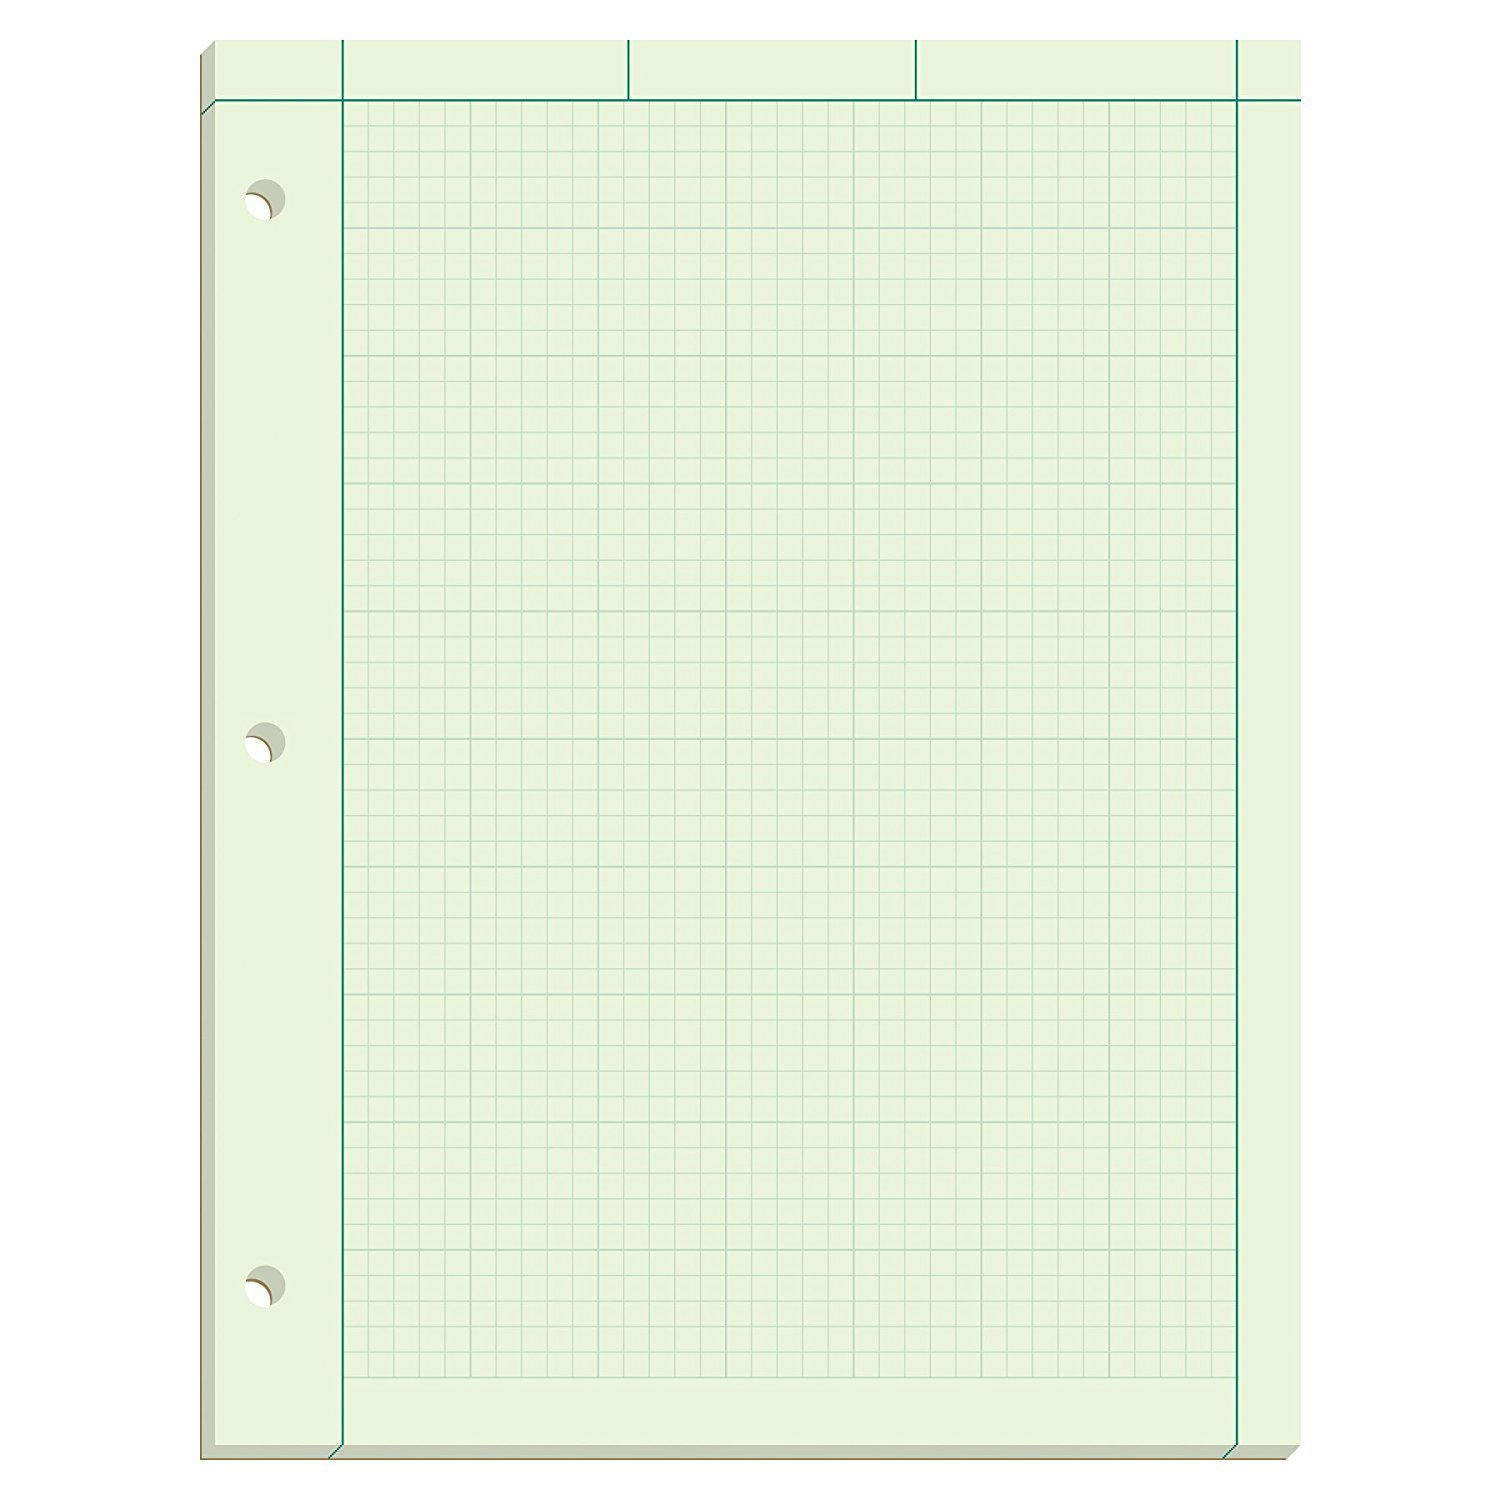 Ampad Evidence Engineering Pad, 100 Sheets, 5 Squares Per Inch, Green Tint, 11'' H x 8 1/2 W, Pack Of 5 (22-142) - Bundle Includes Universal Letter Opener by Ampad (Image #2)